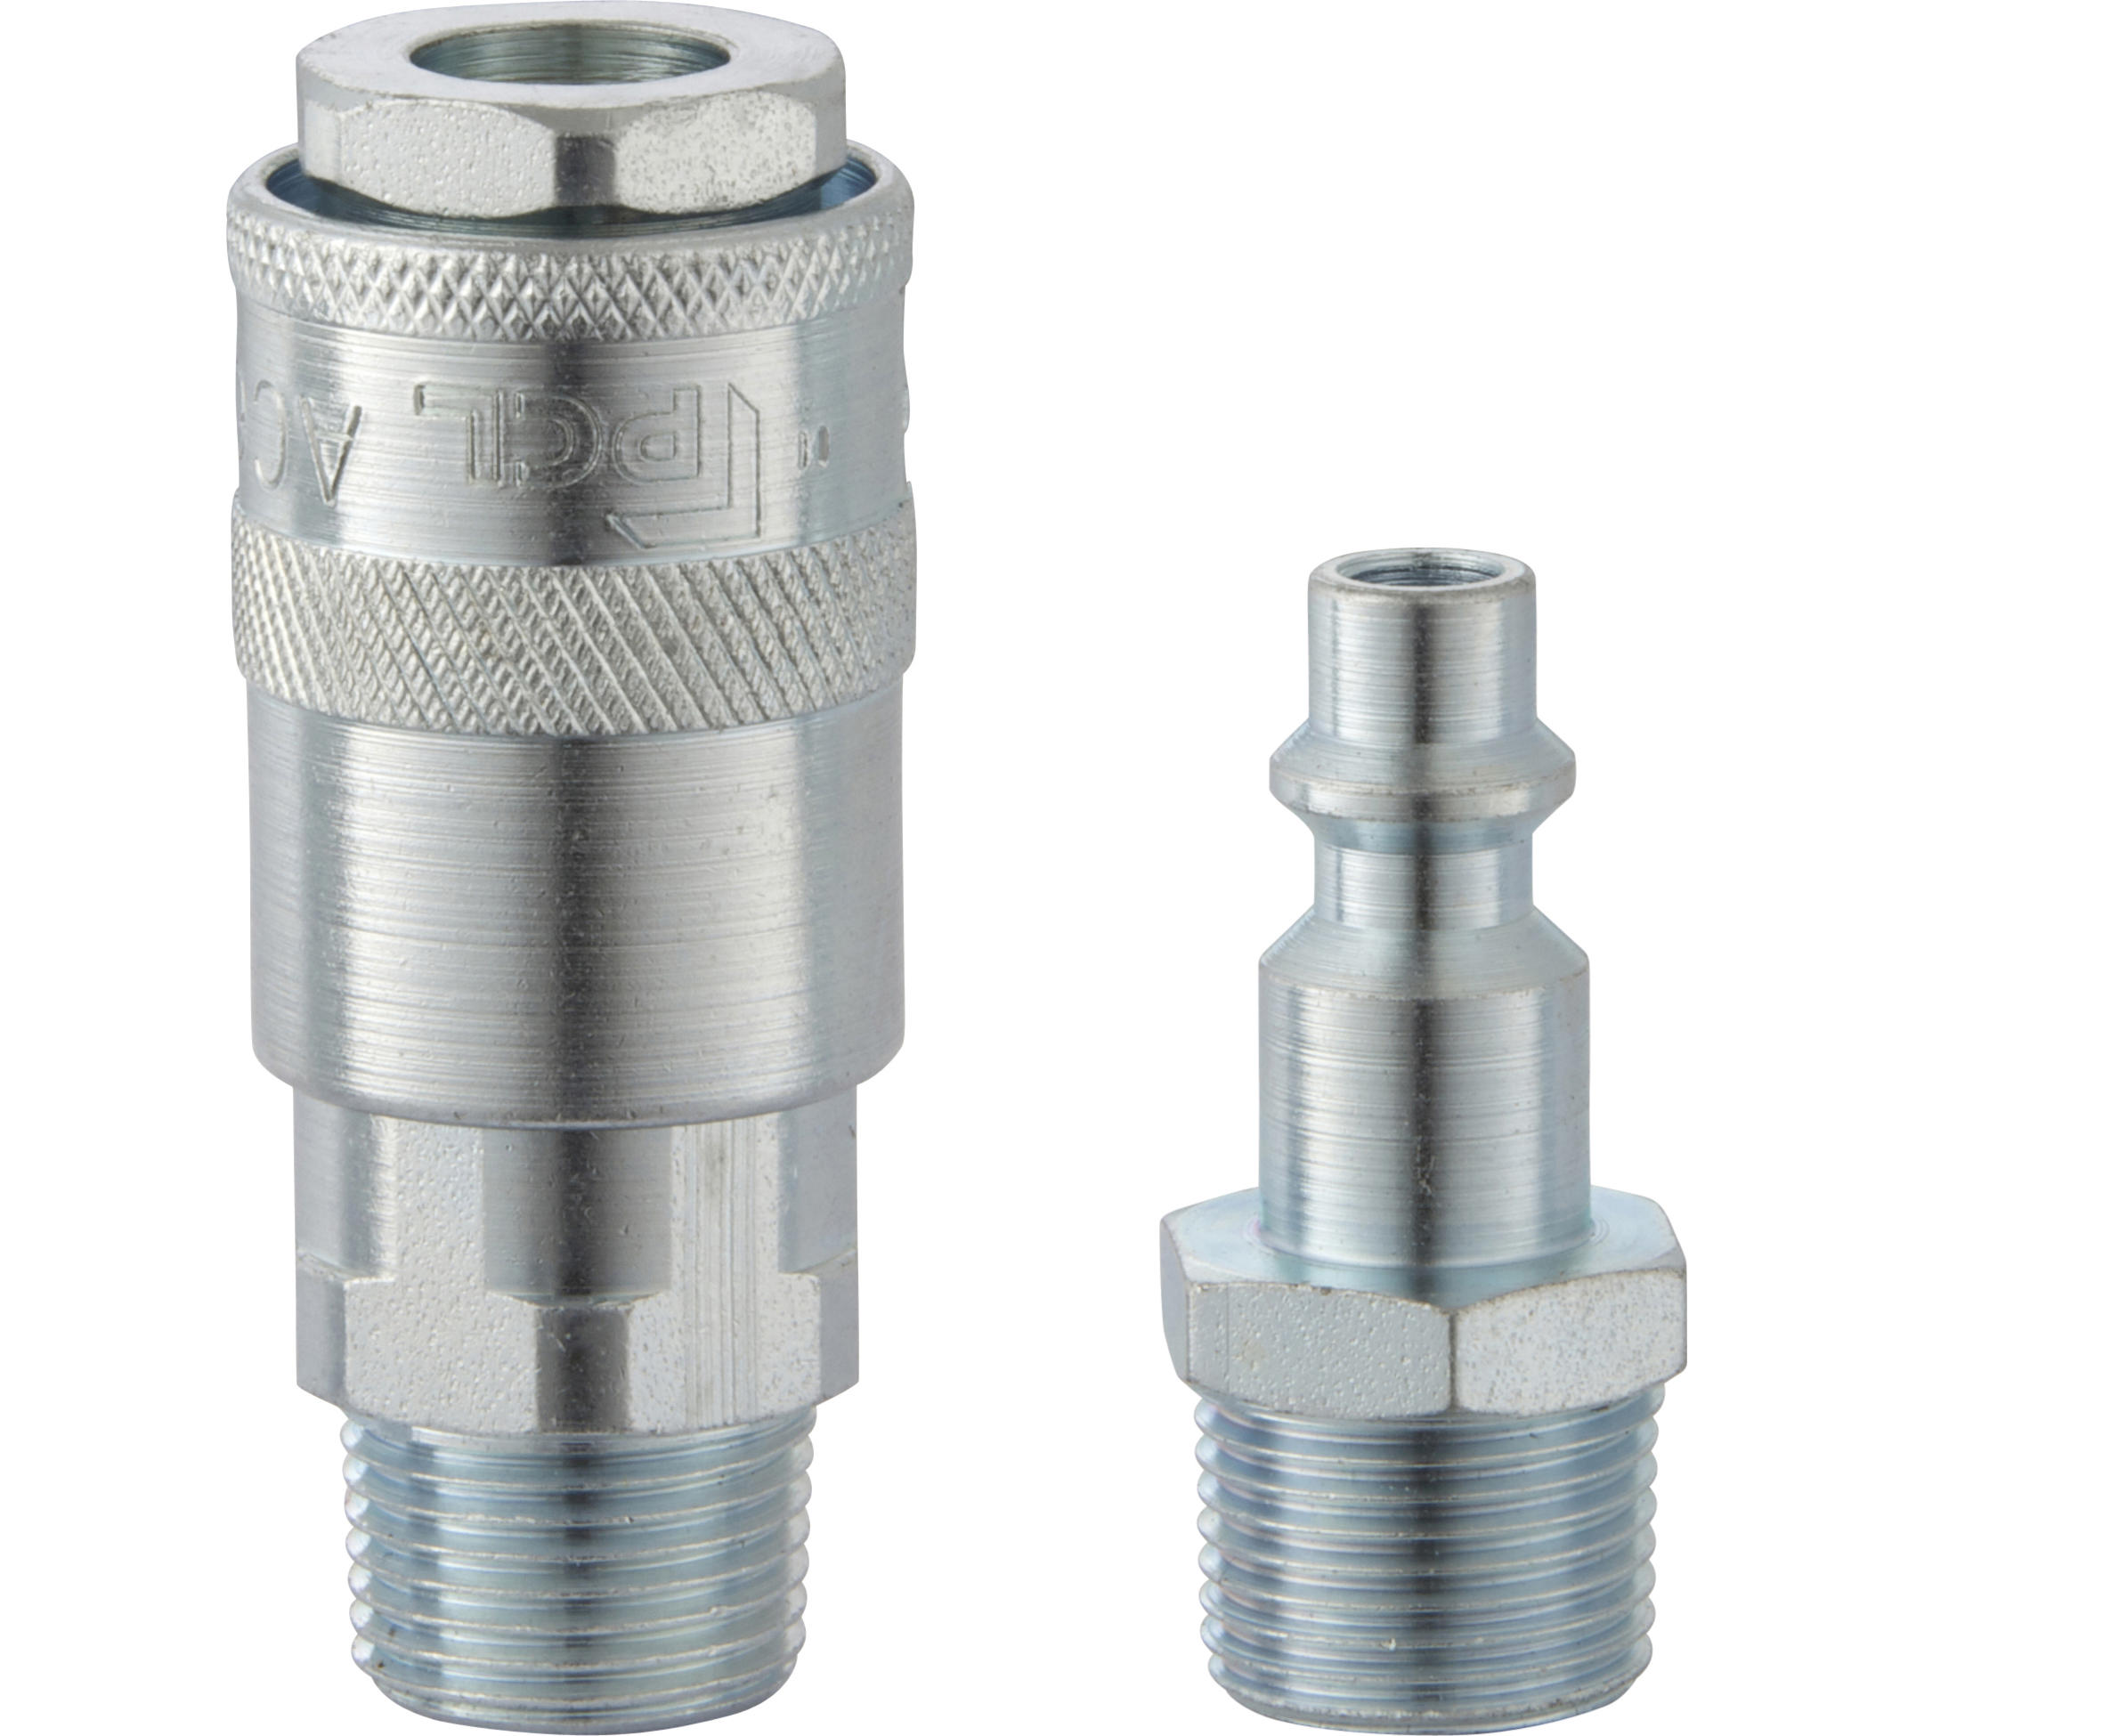 PCL Couplings